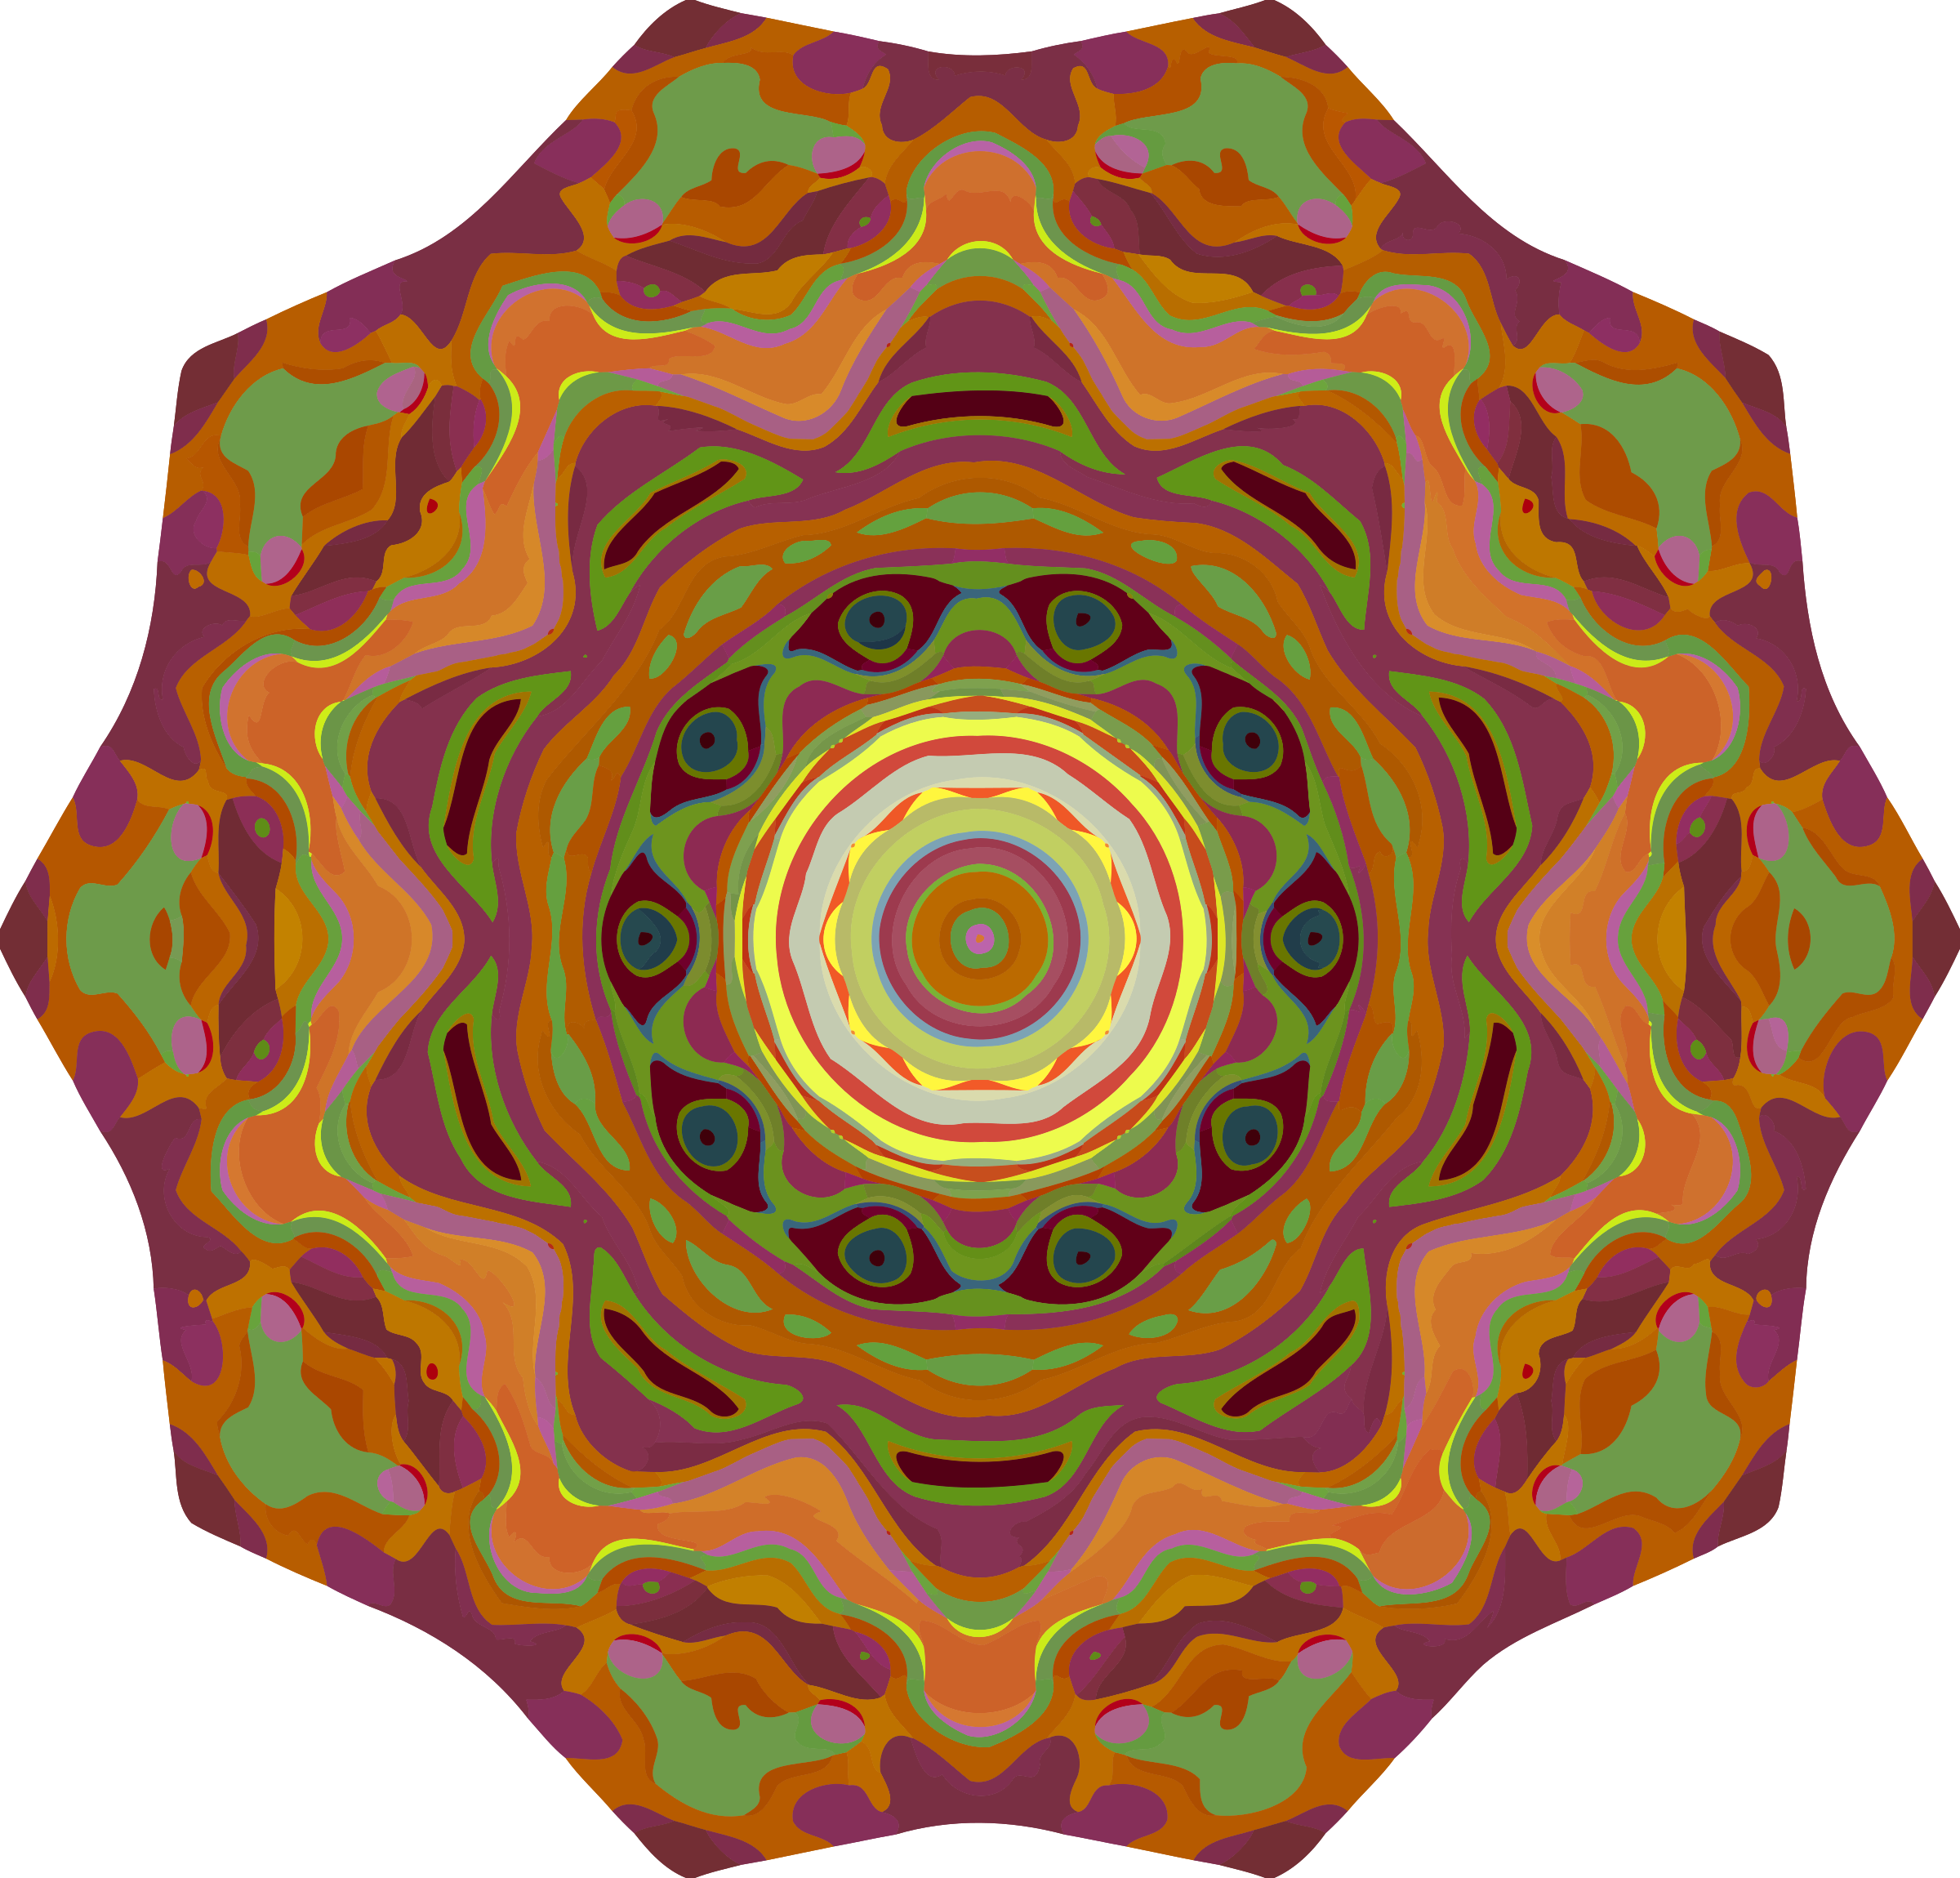 Colourful mandala by Firkin